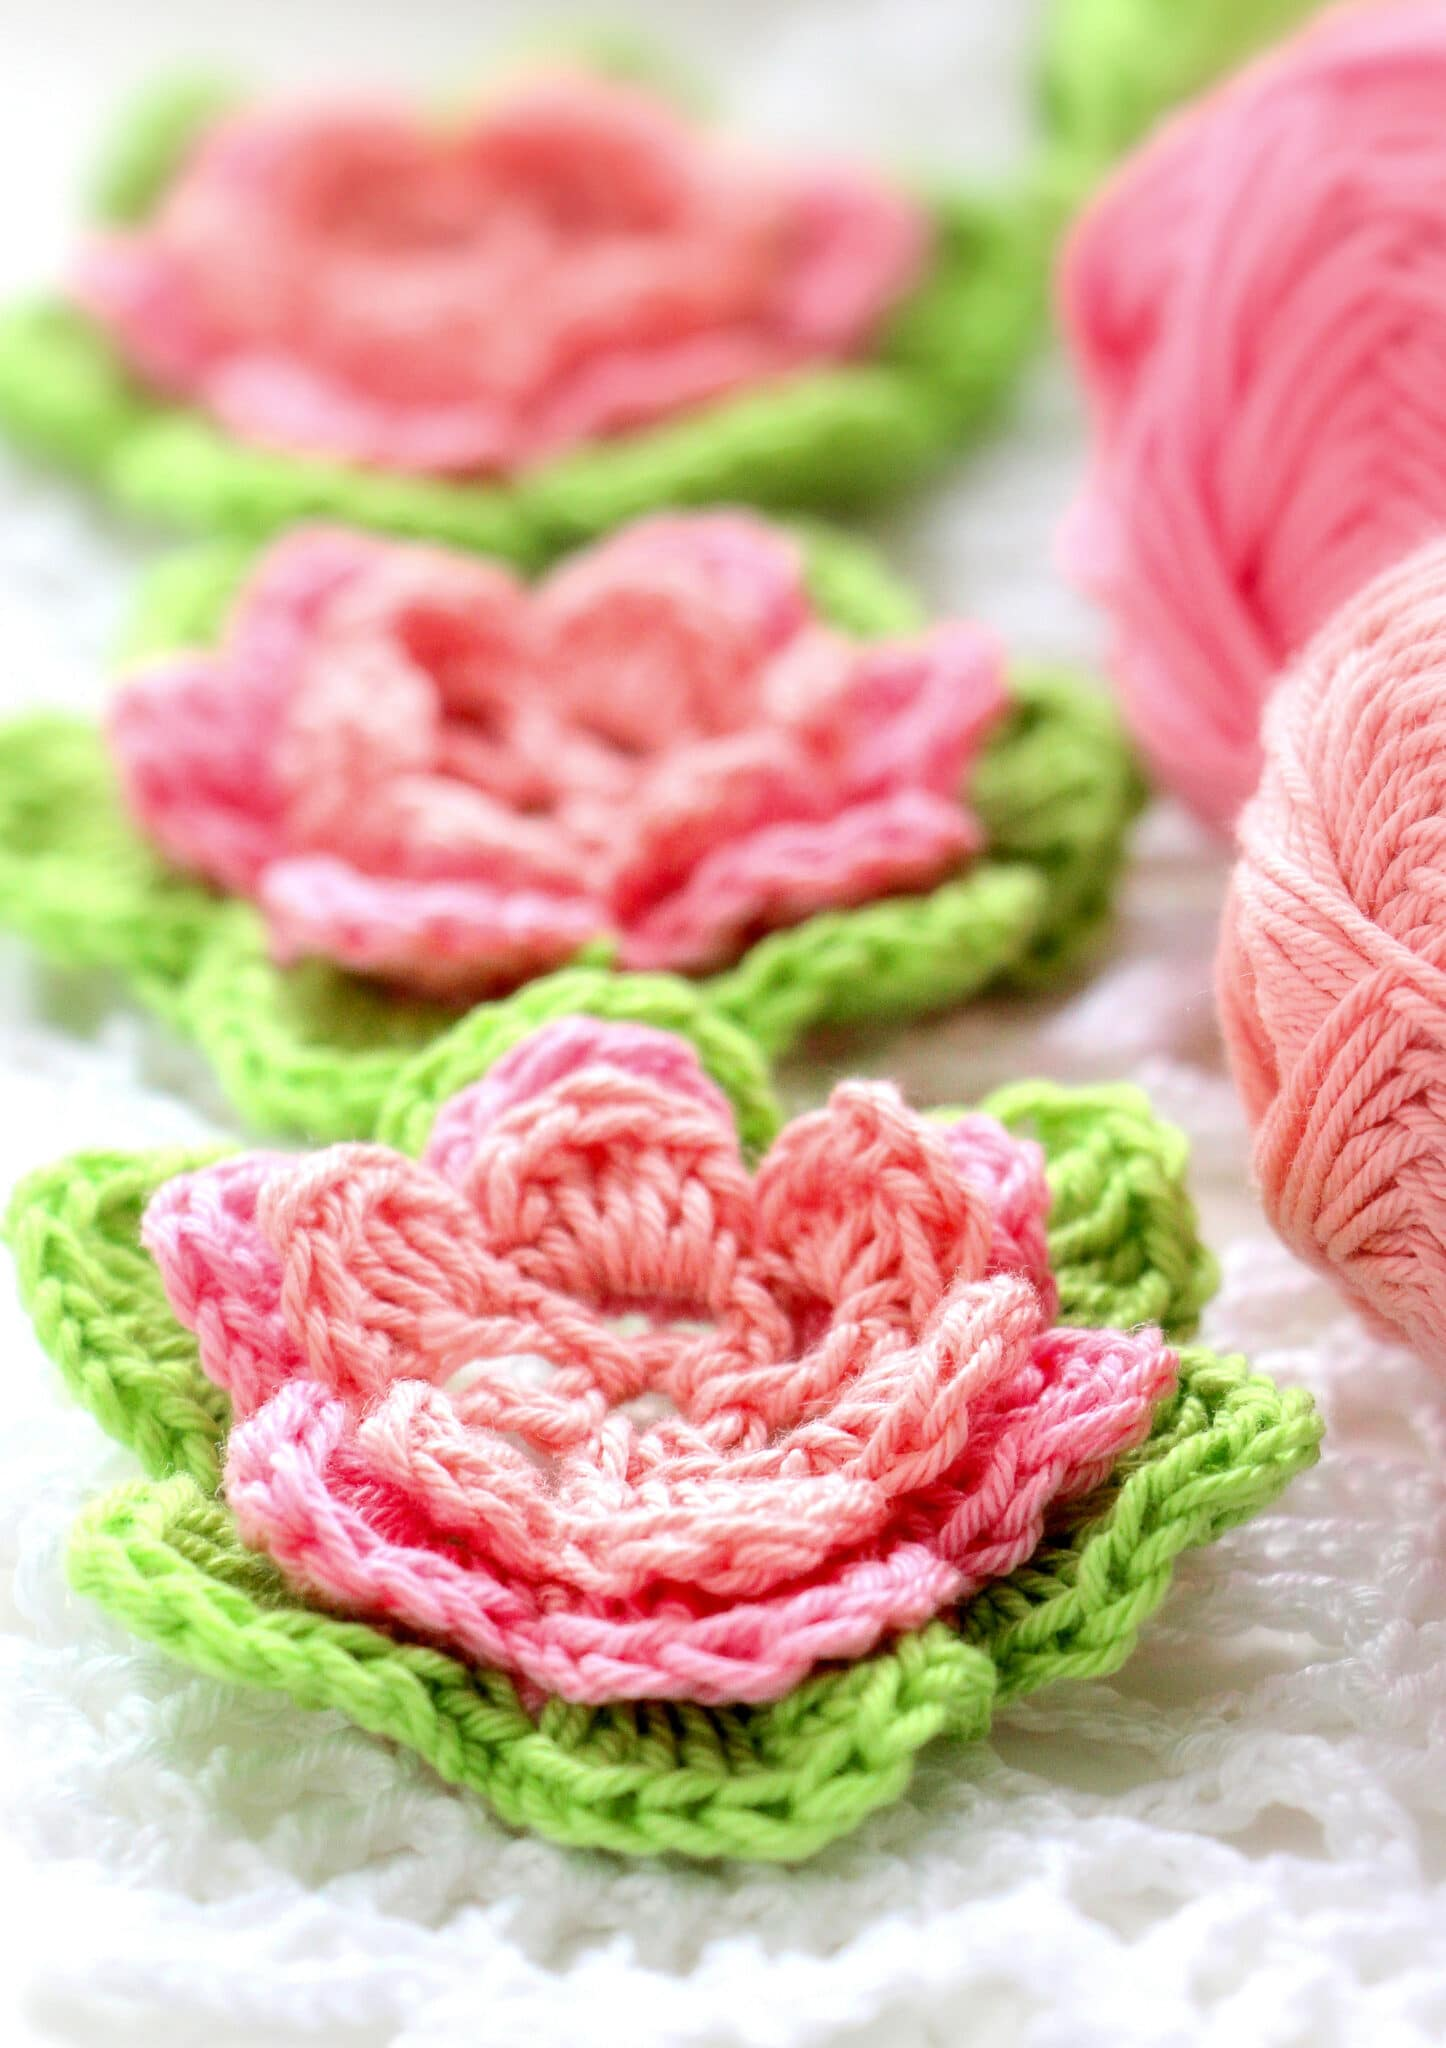 Crochet pink roses with green leaves against a bright white background.